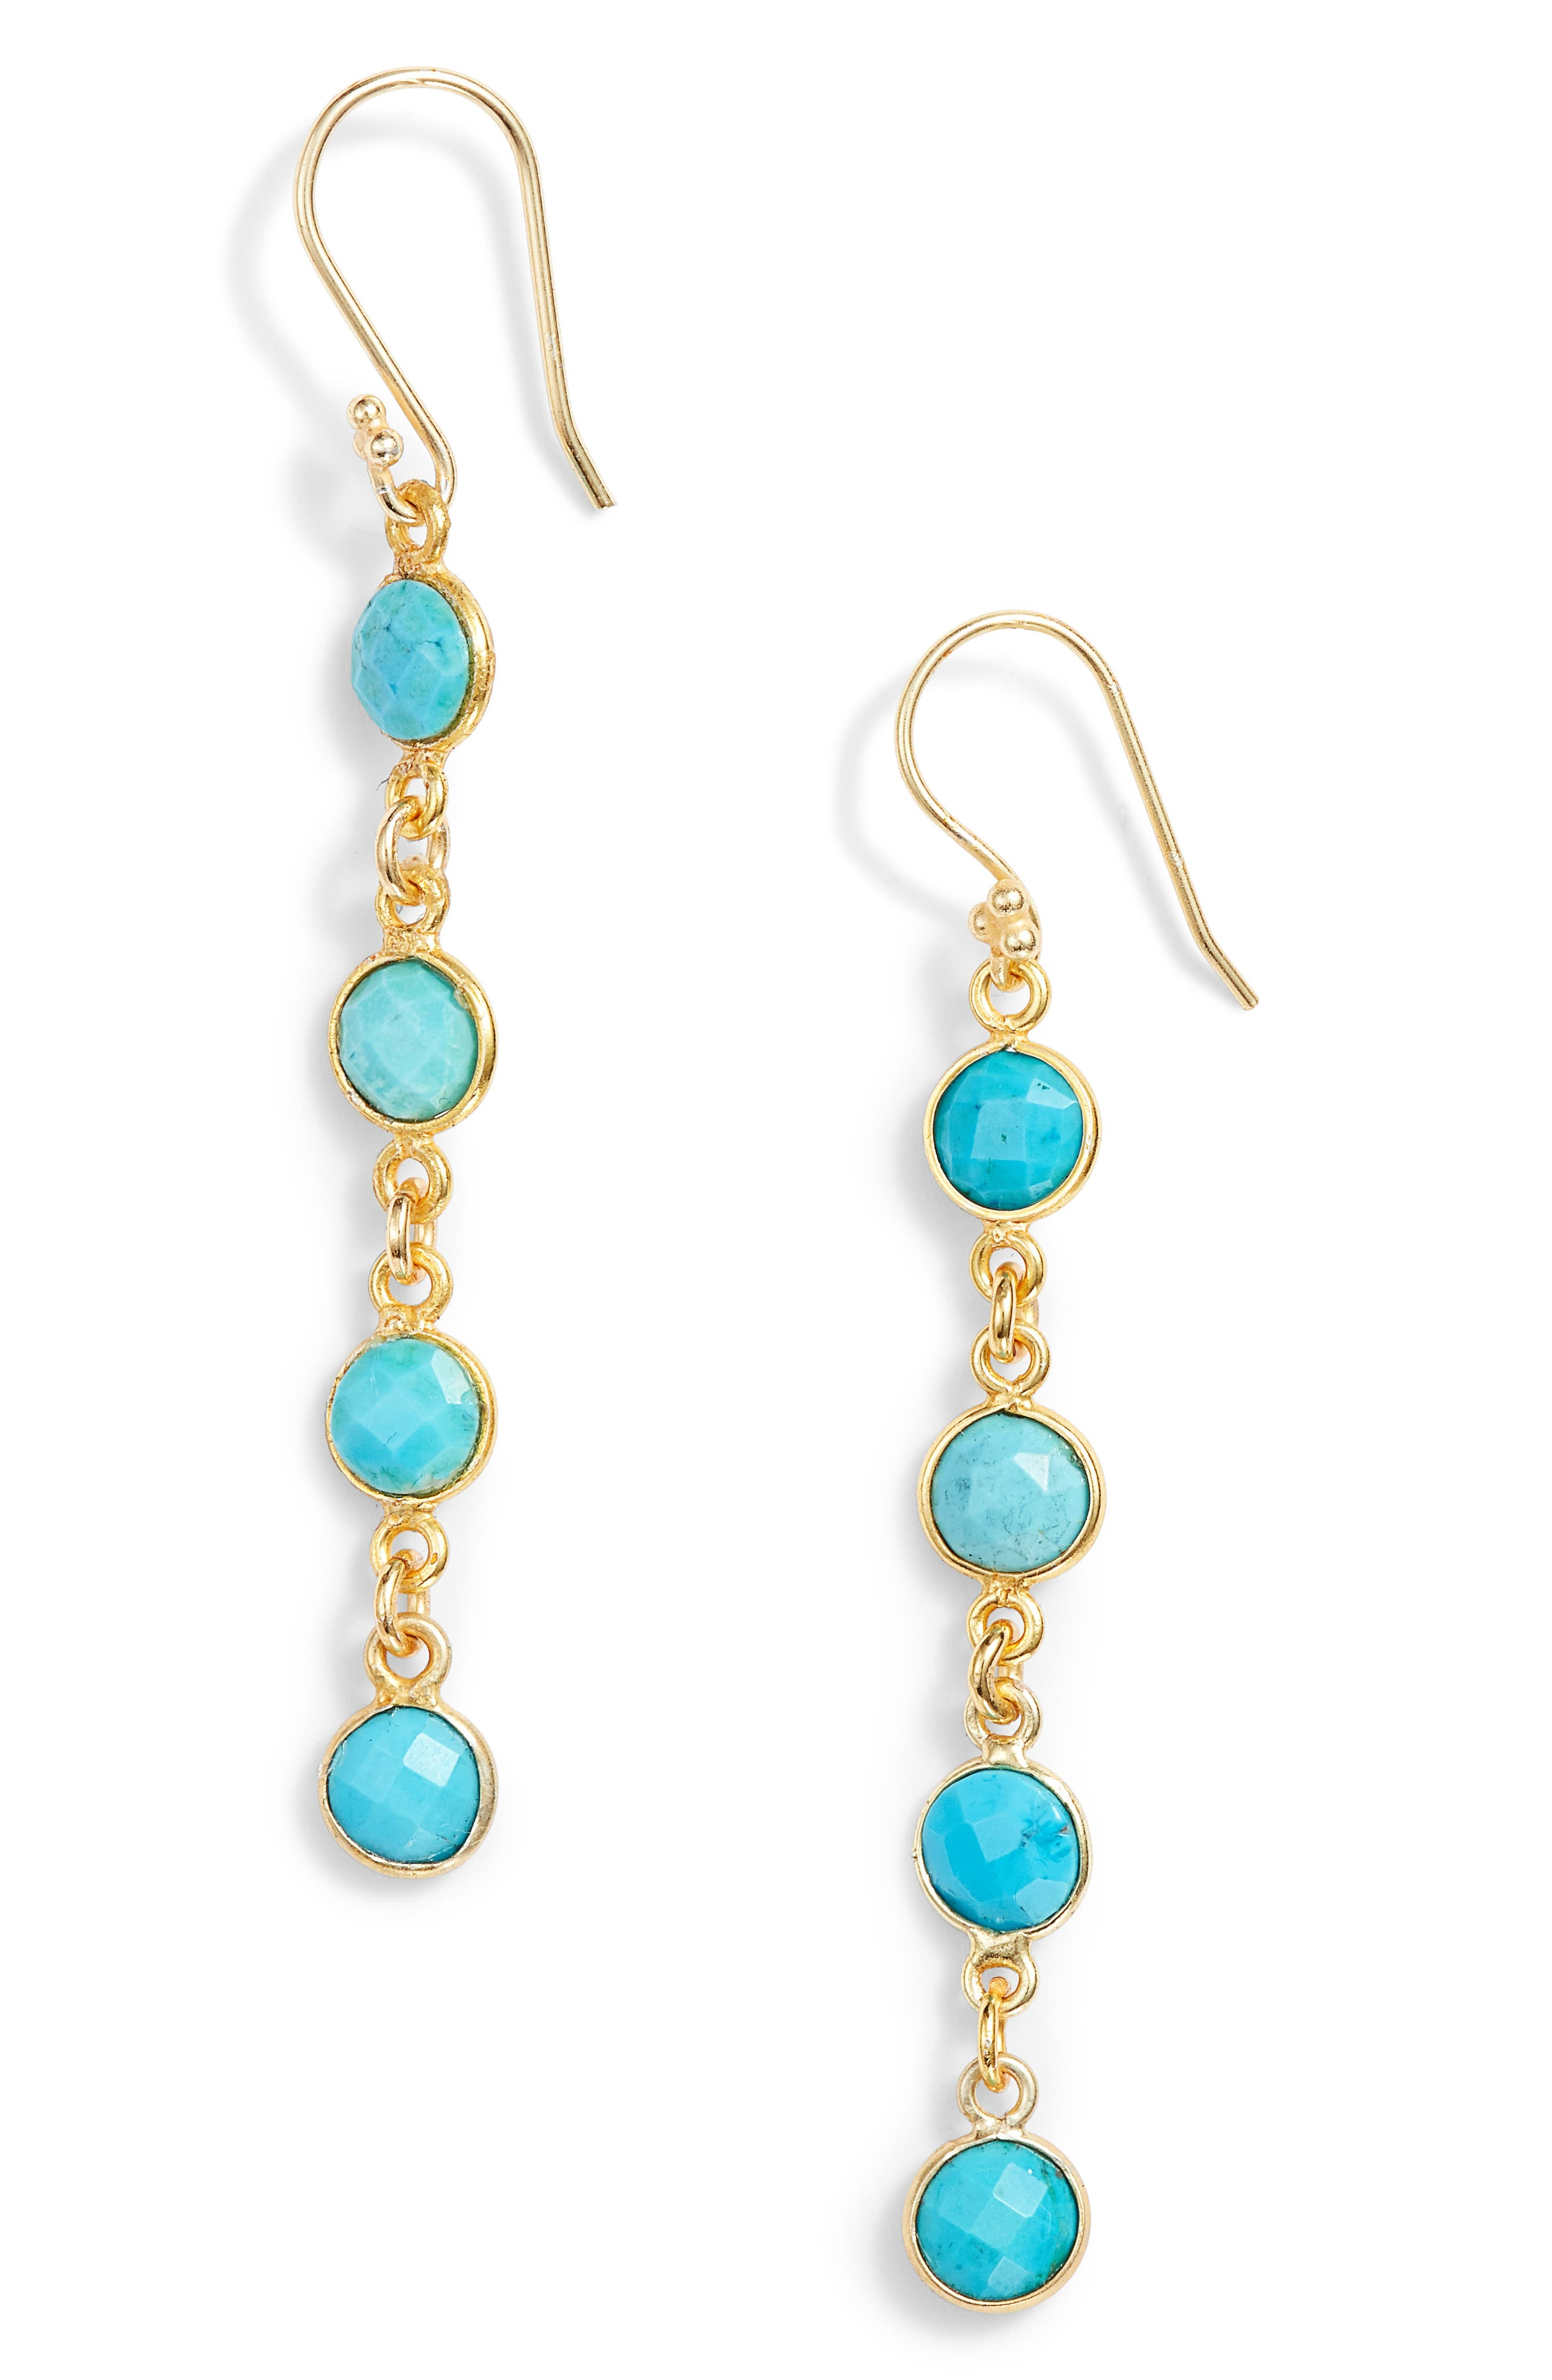 Stone Drop Earrings,                         Main,                         color, Turquoise